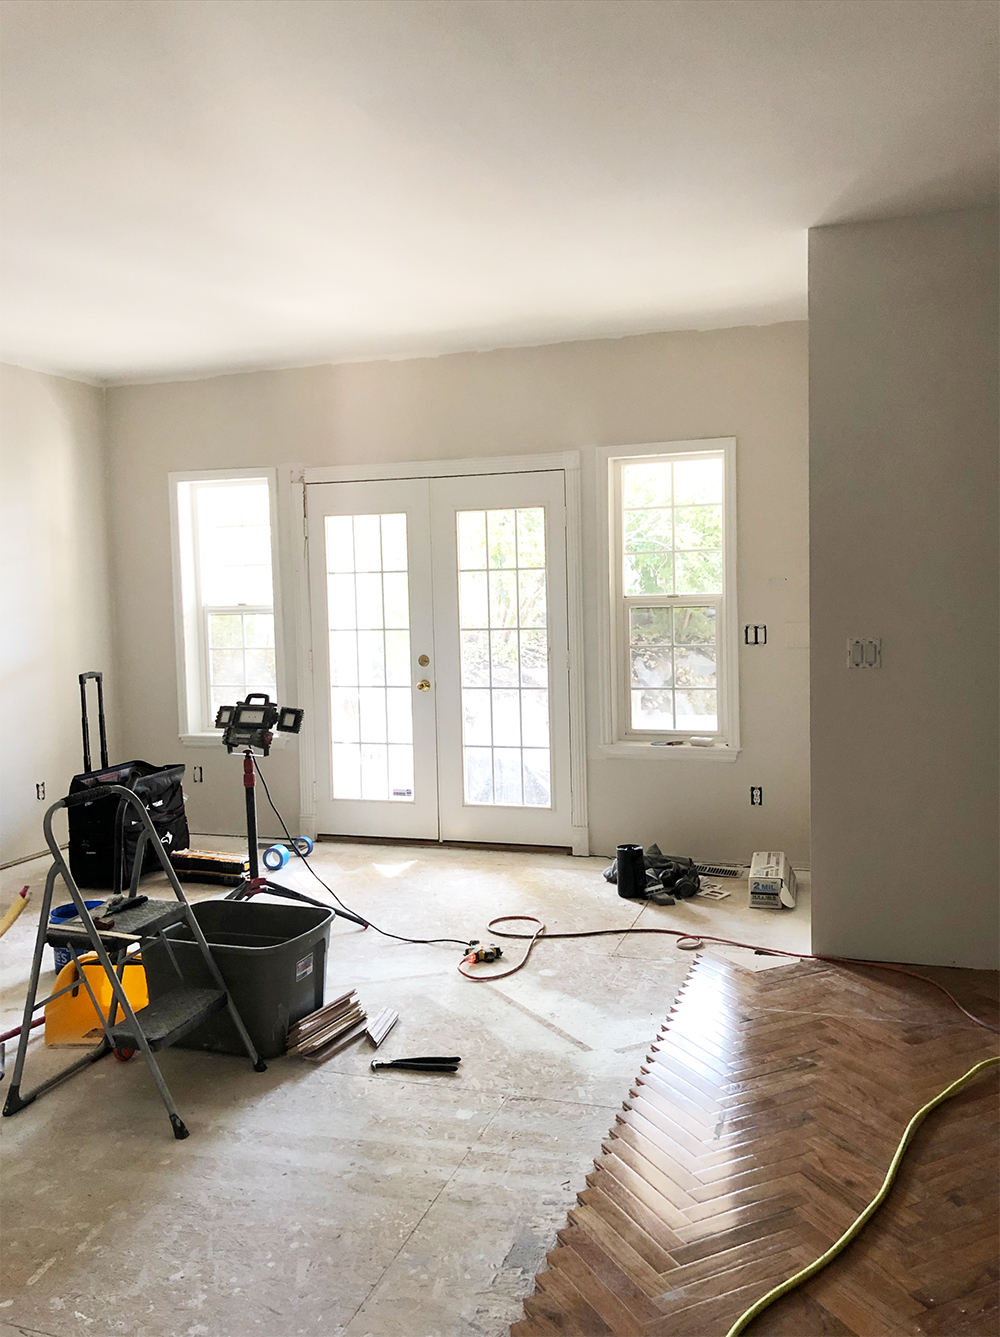 10 Home Project Budgeting & Money Tips - roomfortuesday.com